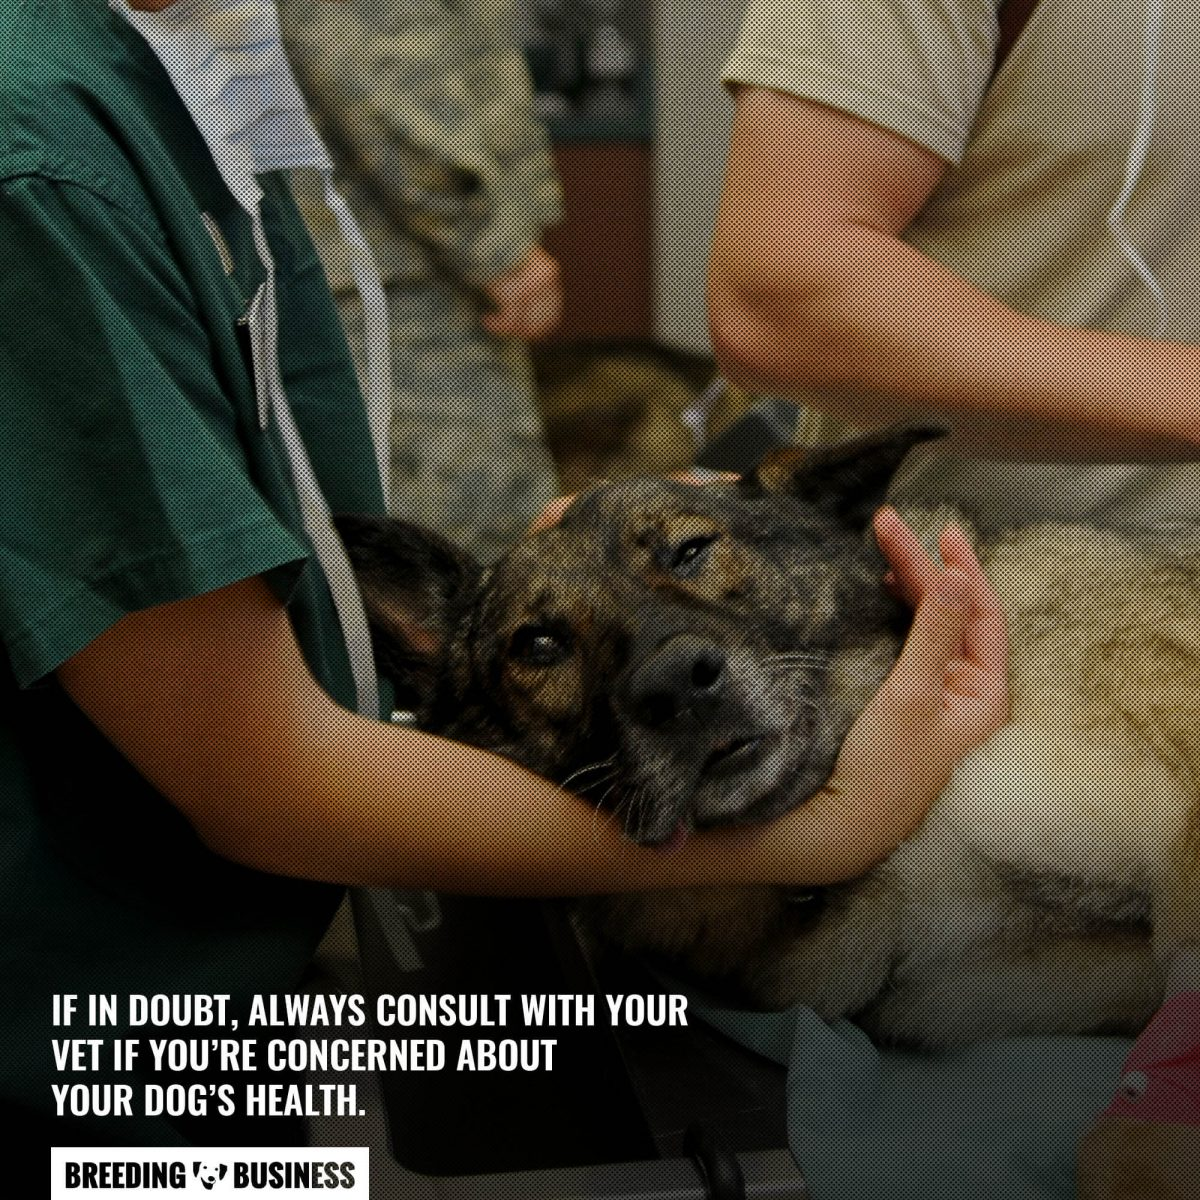 when in doubt consult a vet